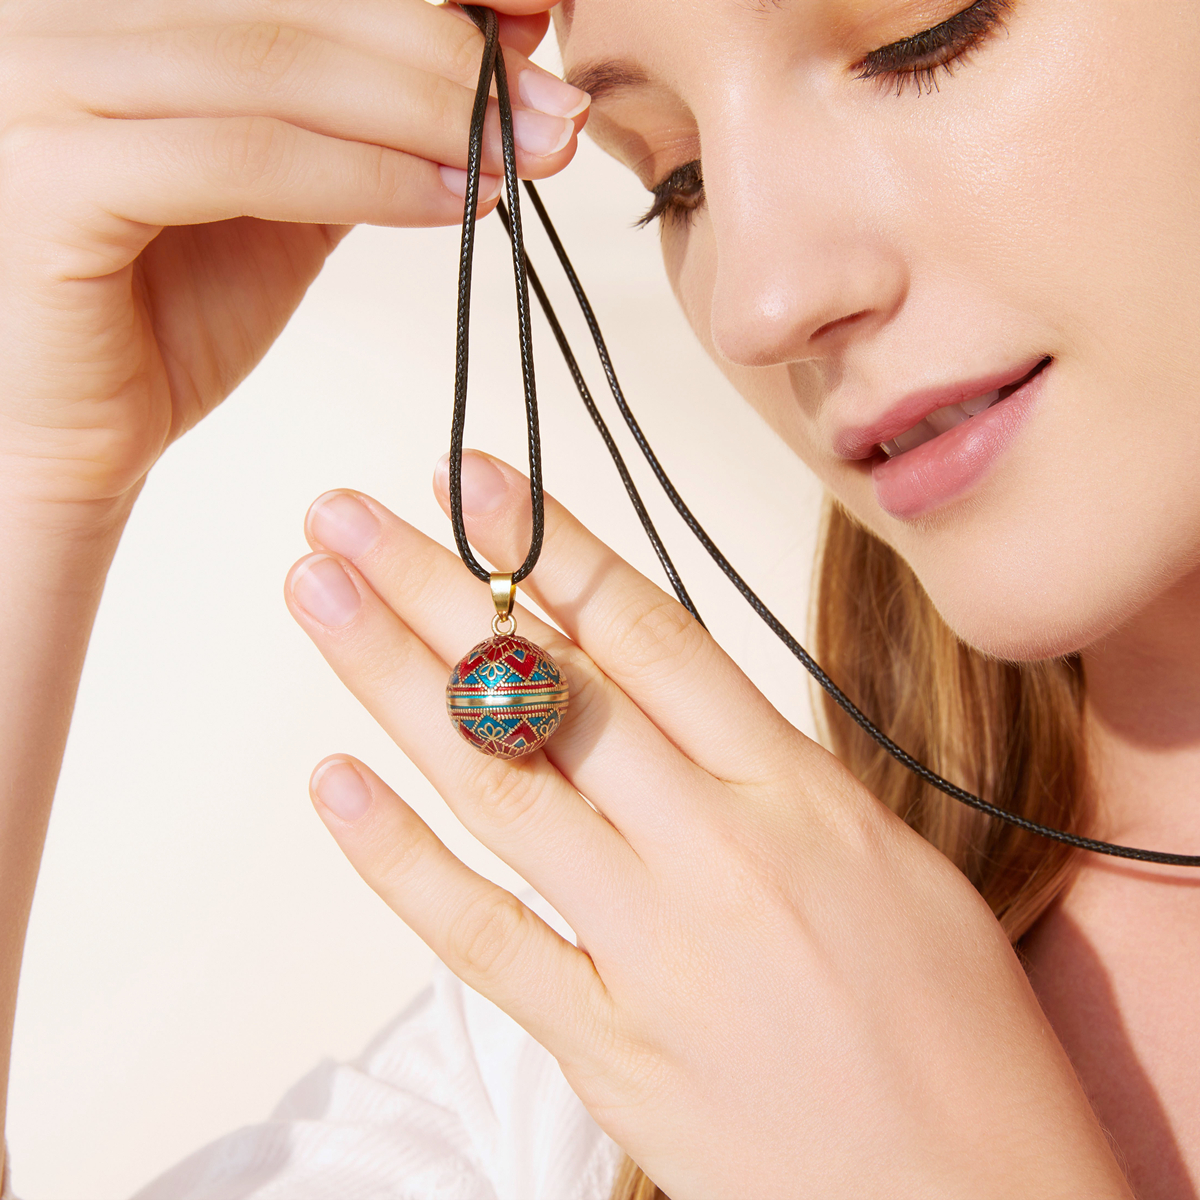 Moonstone Labradorite harmony Ball Mexican Bola Chiming Pendant With stone both sides Chime Ball Angel Caller Musical Pendant Pregnancy Gift